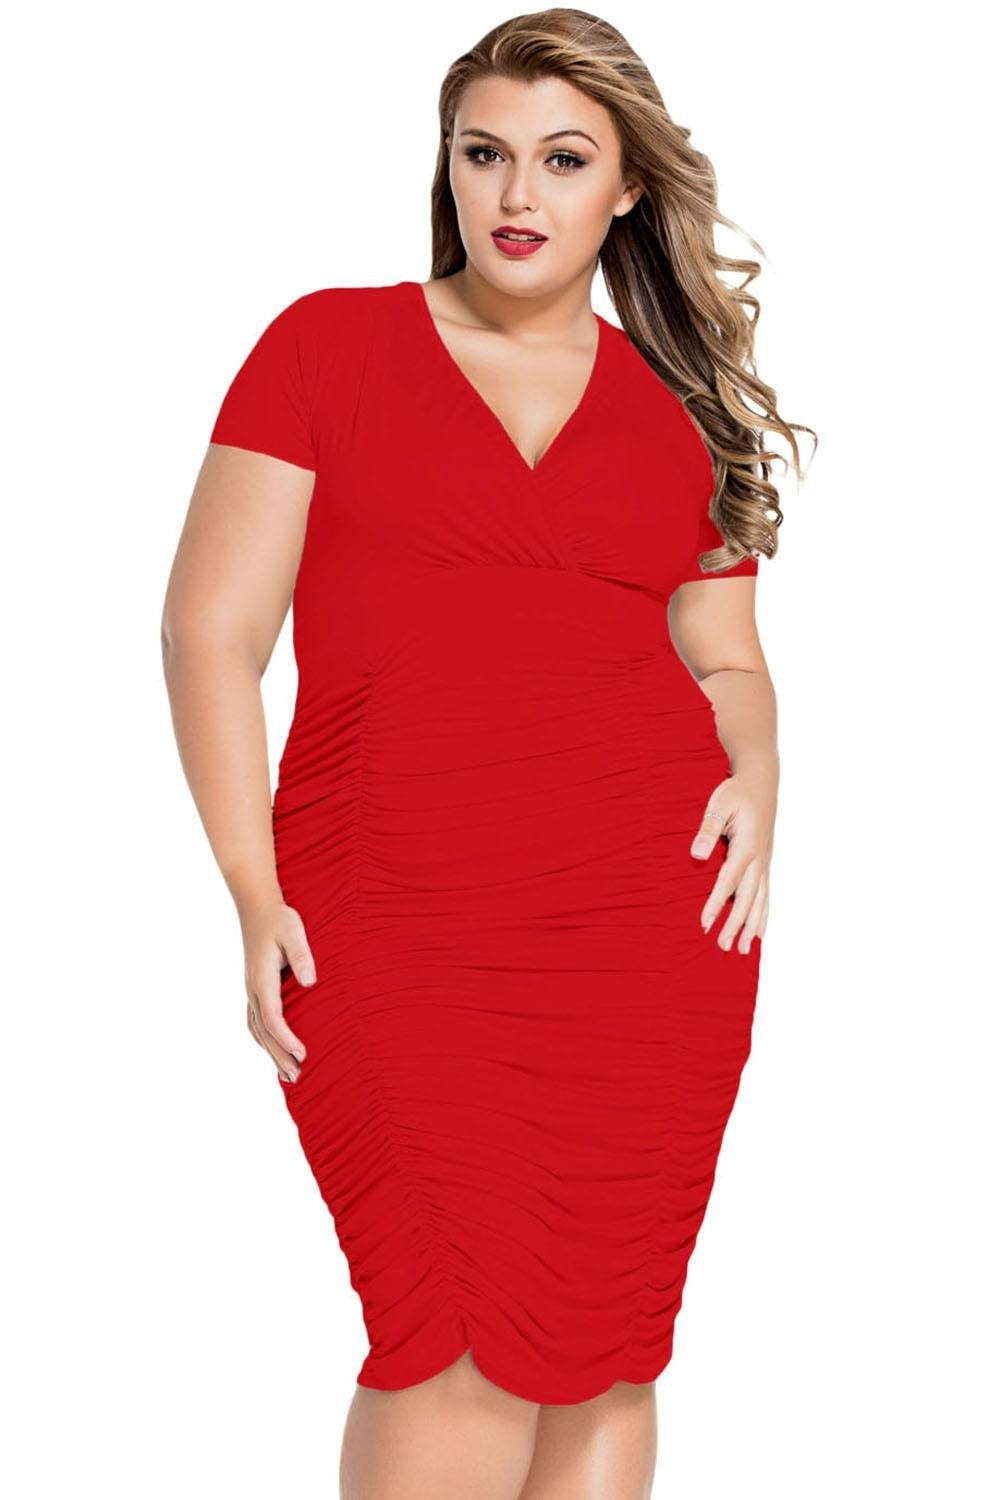 Sophia Curvaceous Cherry Dress - Budget Babe Couture